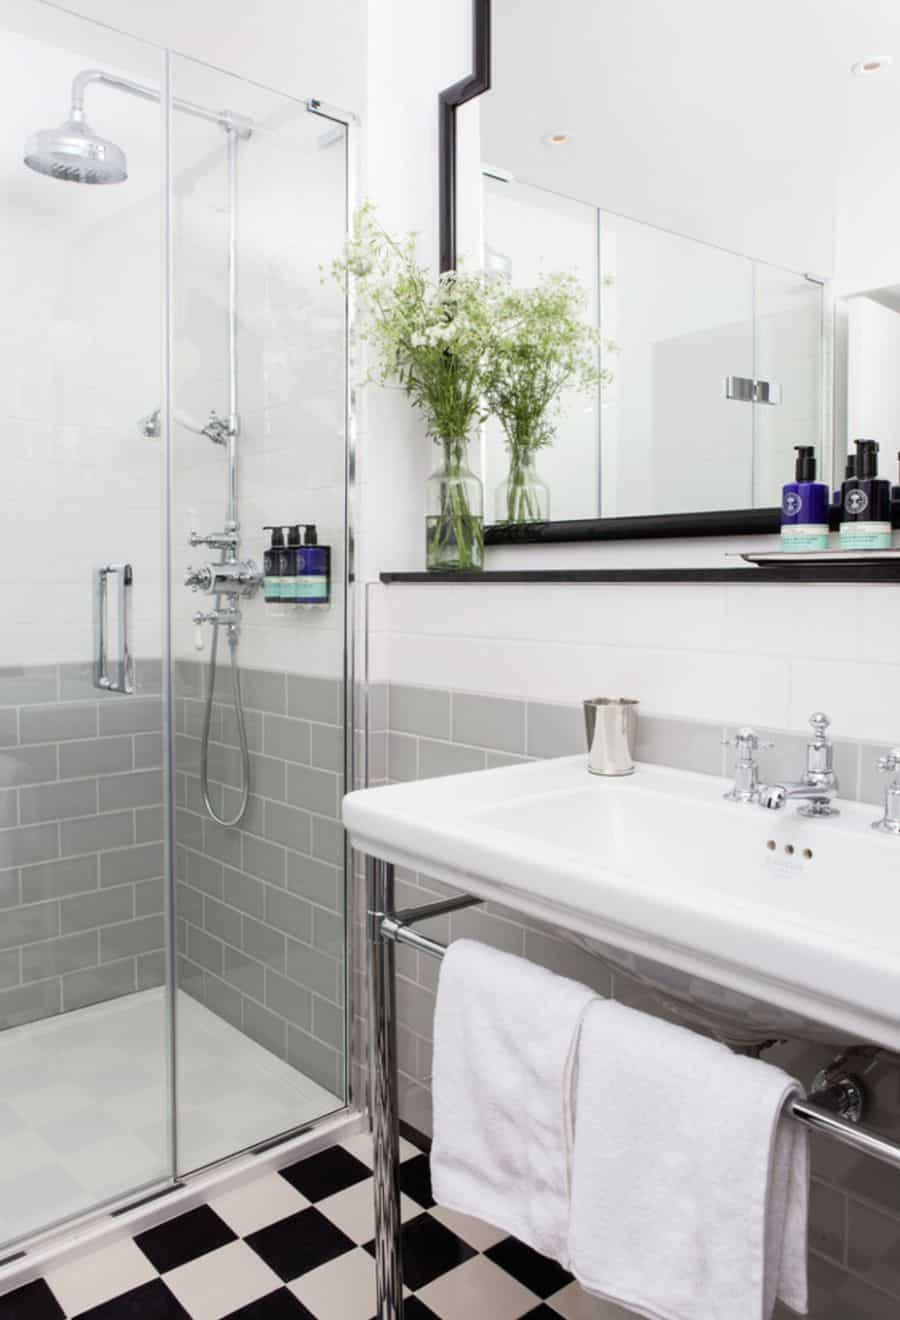 This modern white sink looks great in a guest bathroom.